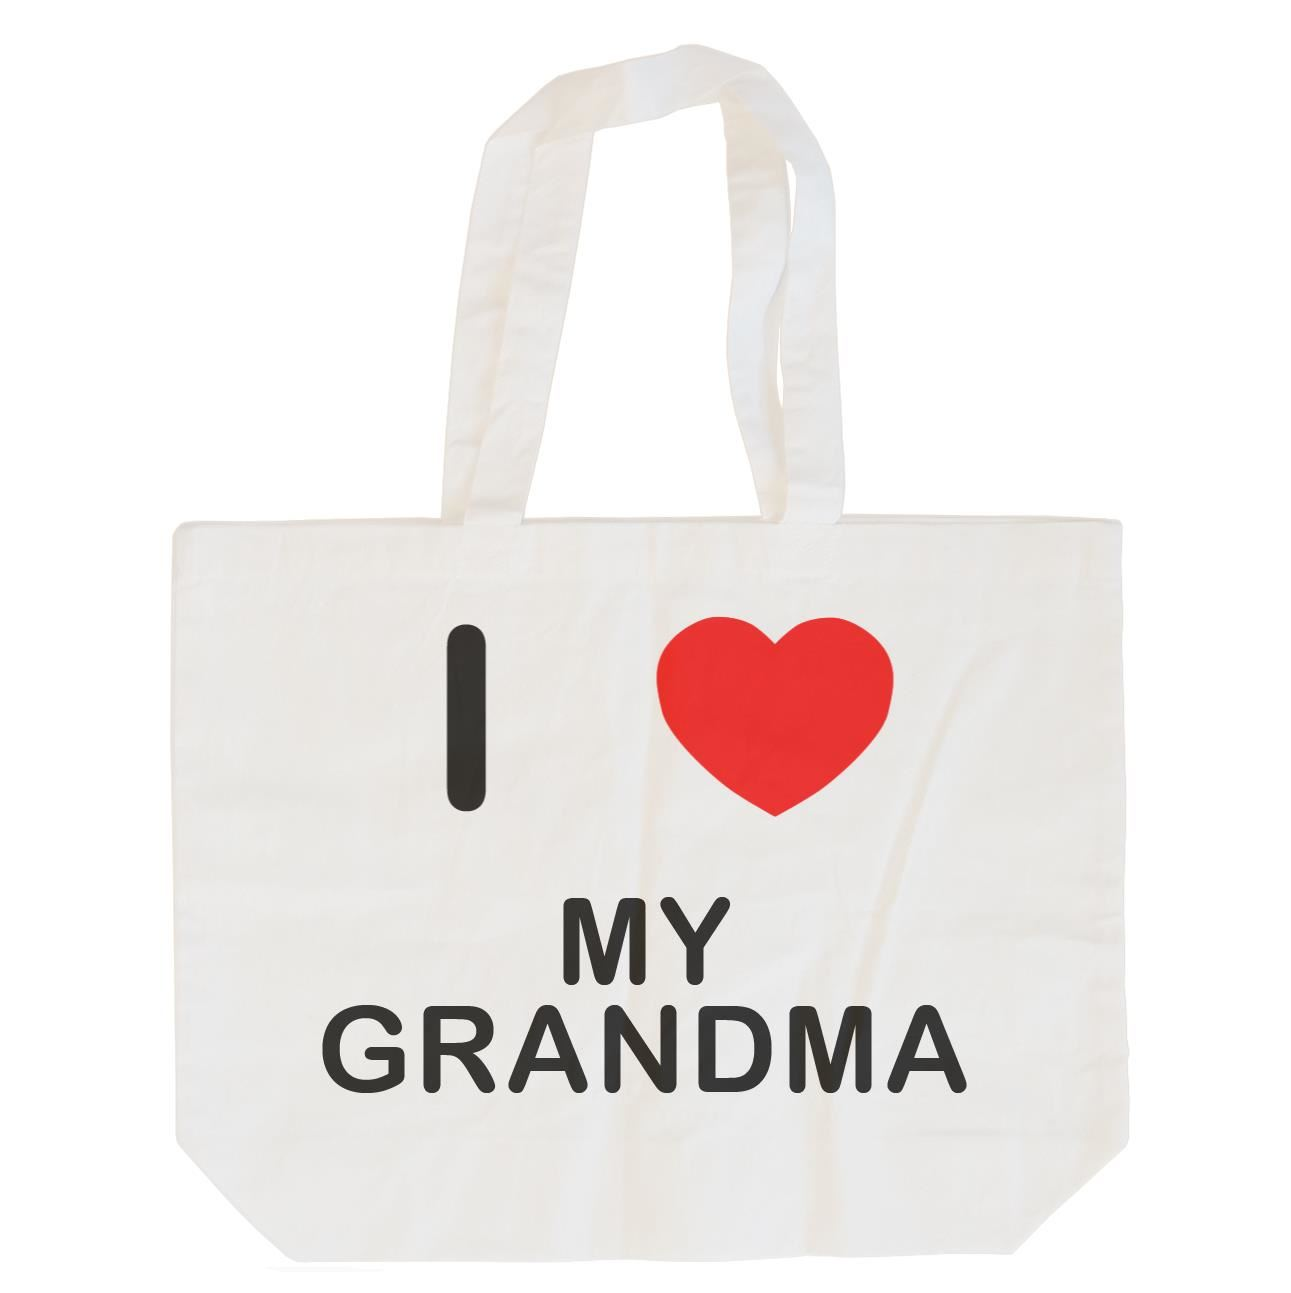 I Love My Grandma - Cotton Bag | Size choice Tote, Shopper or Sling